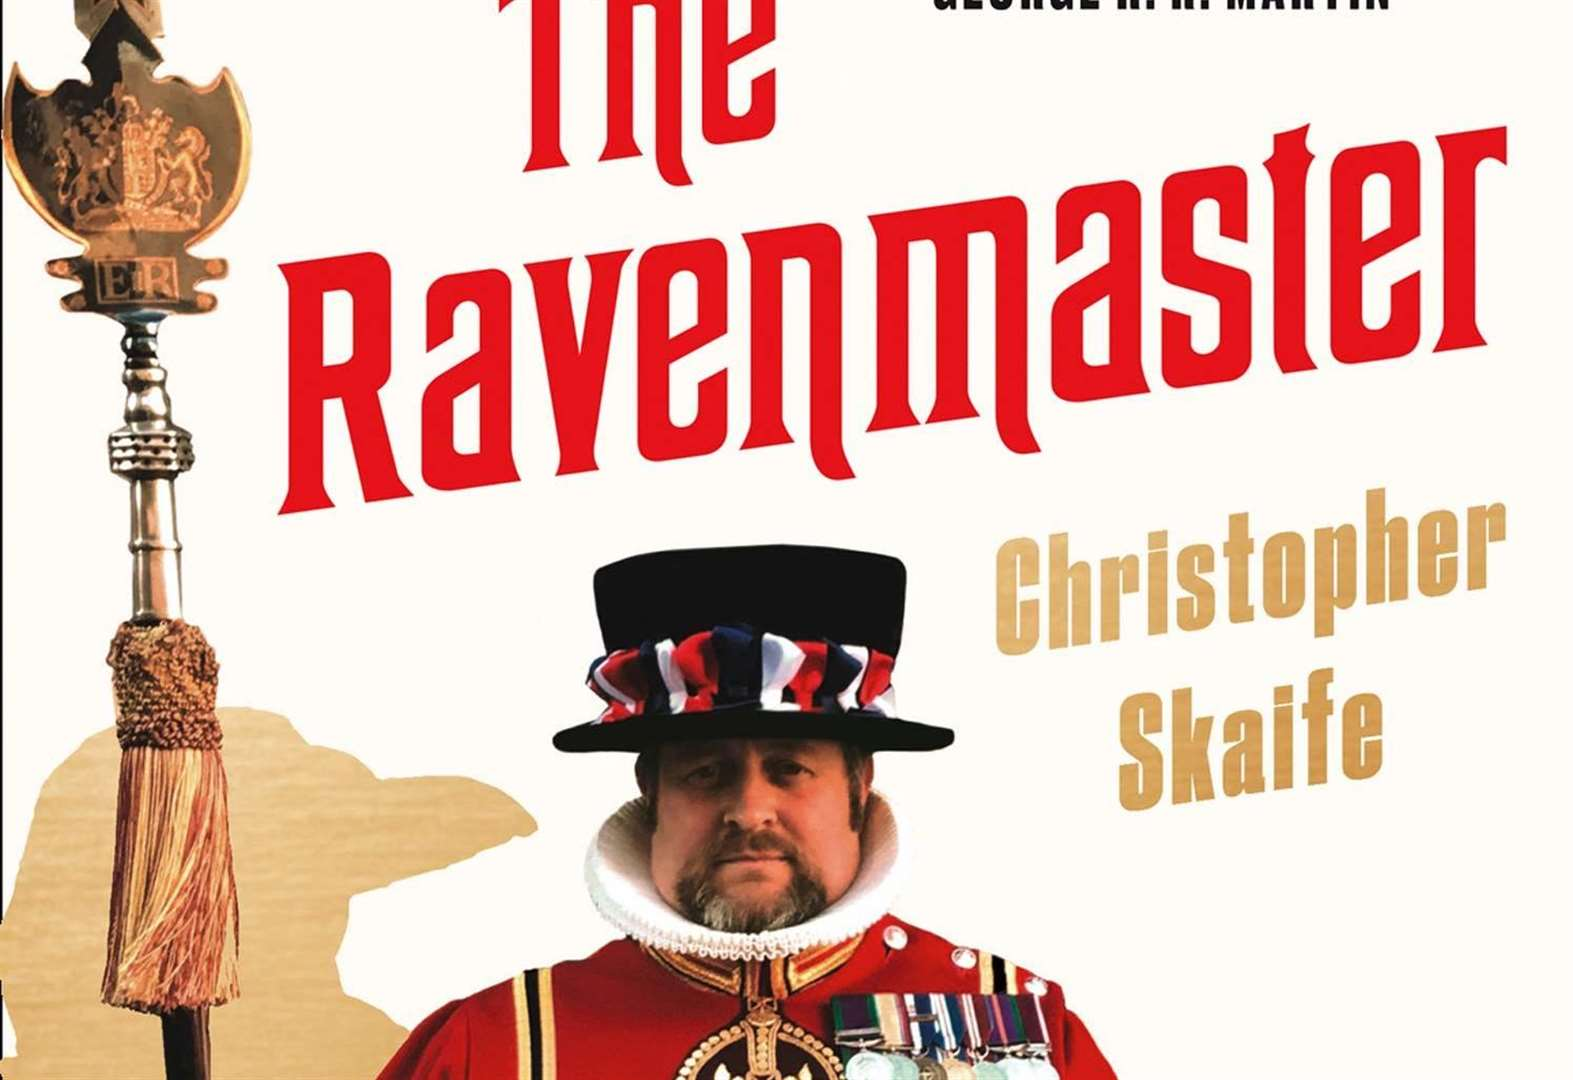 BOOK OF THE WEEK: The Ravenmaster by Christopher Skaife